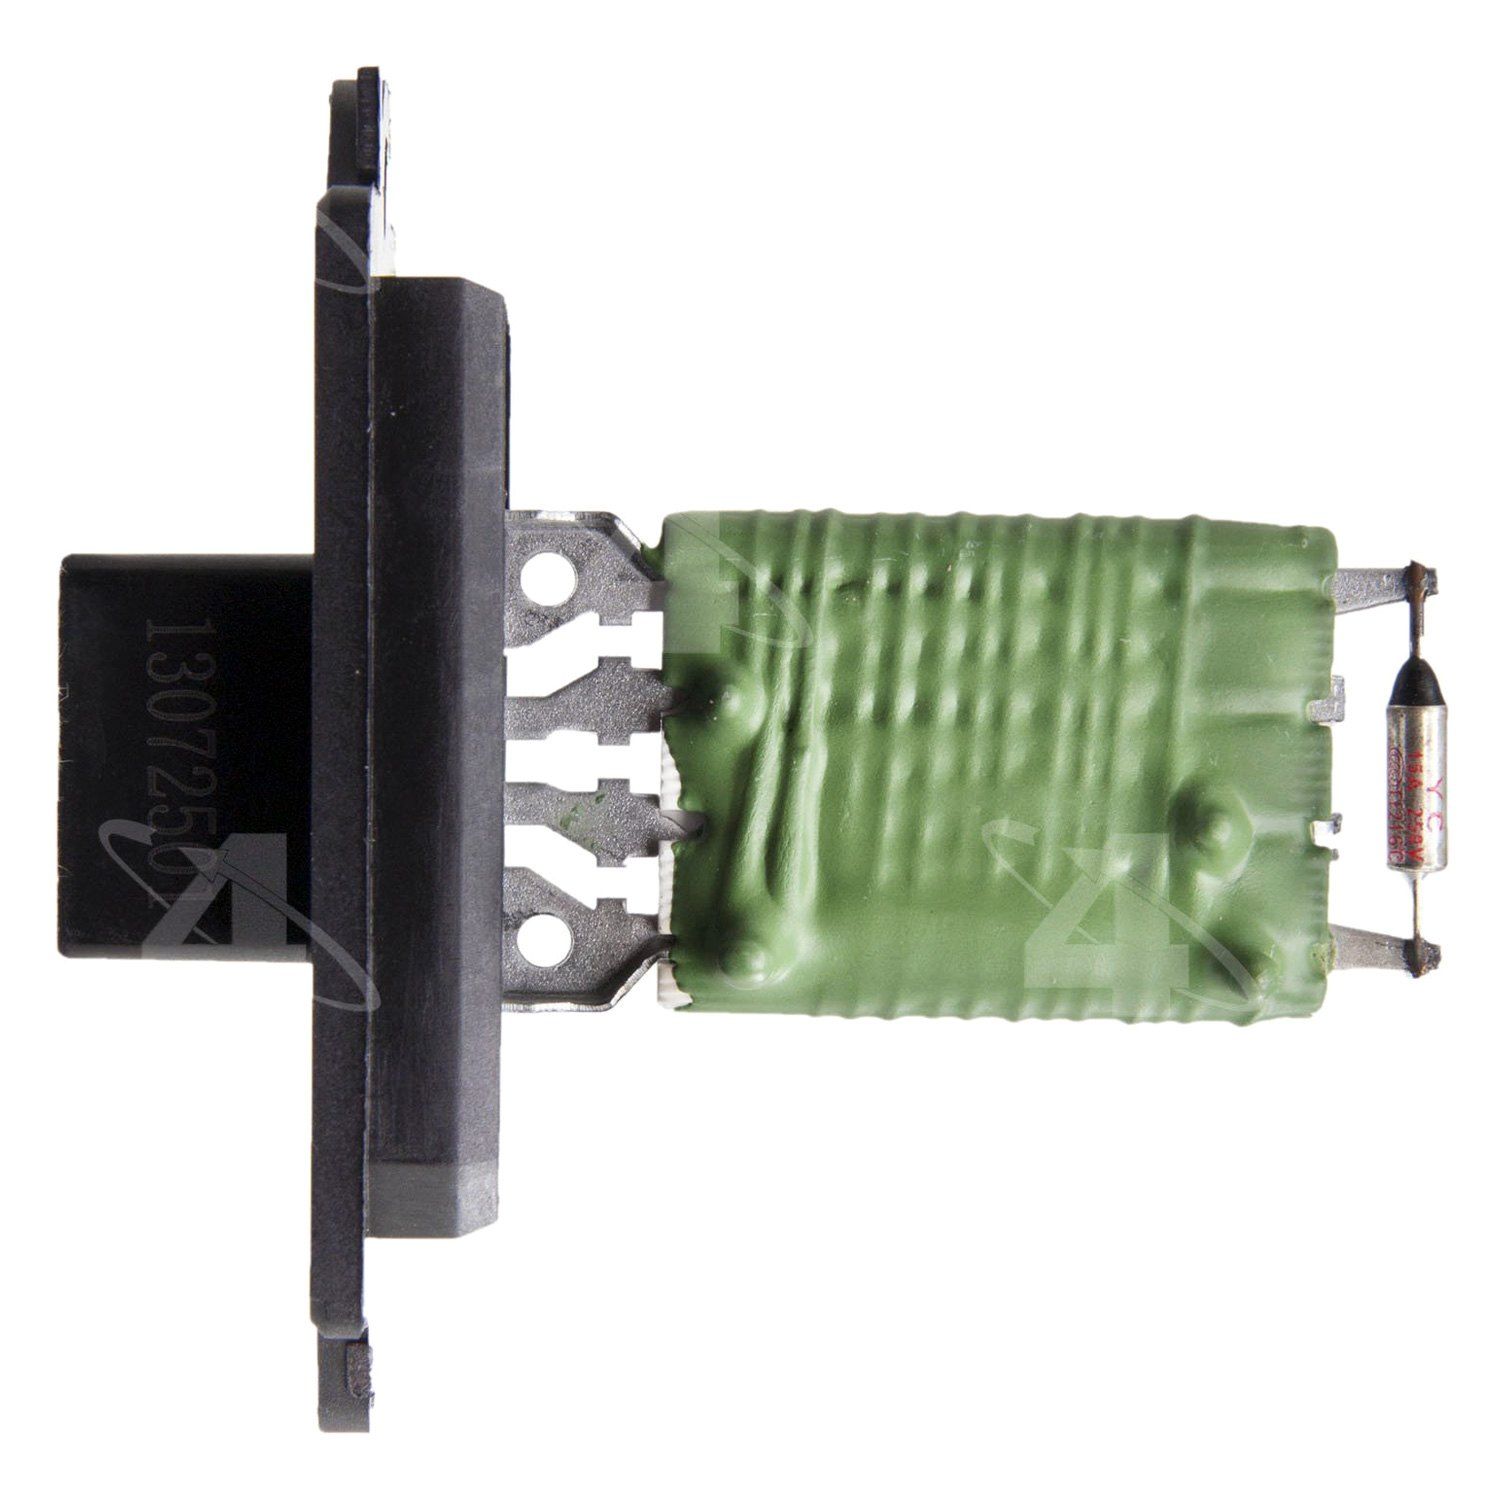 Four seasons jeep grand cherokee 2006 hvac blower motor for Blower motor for furnace cost